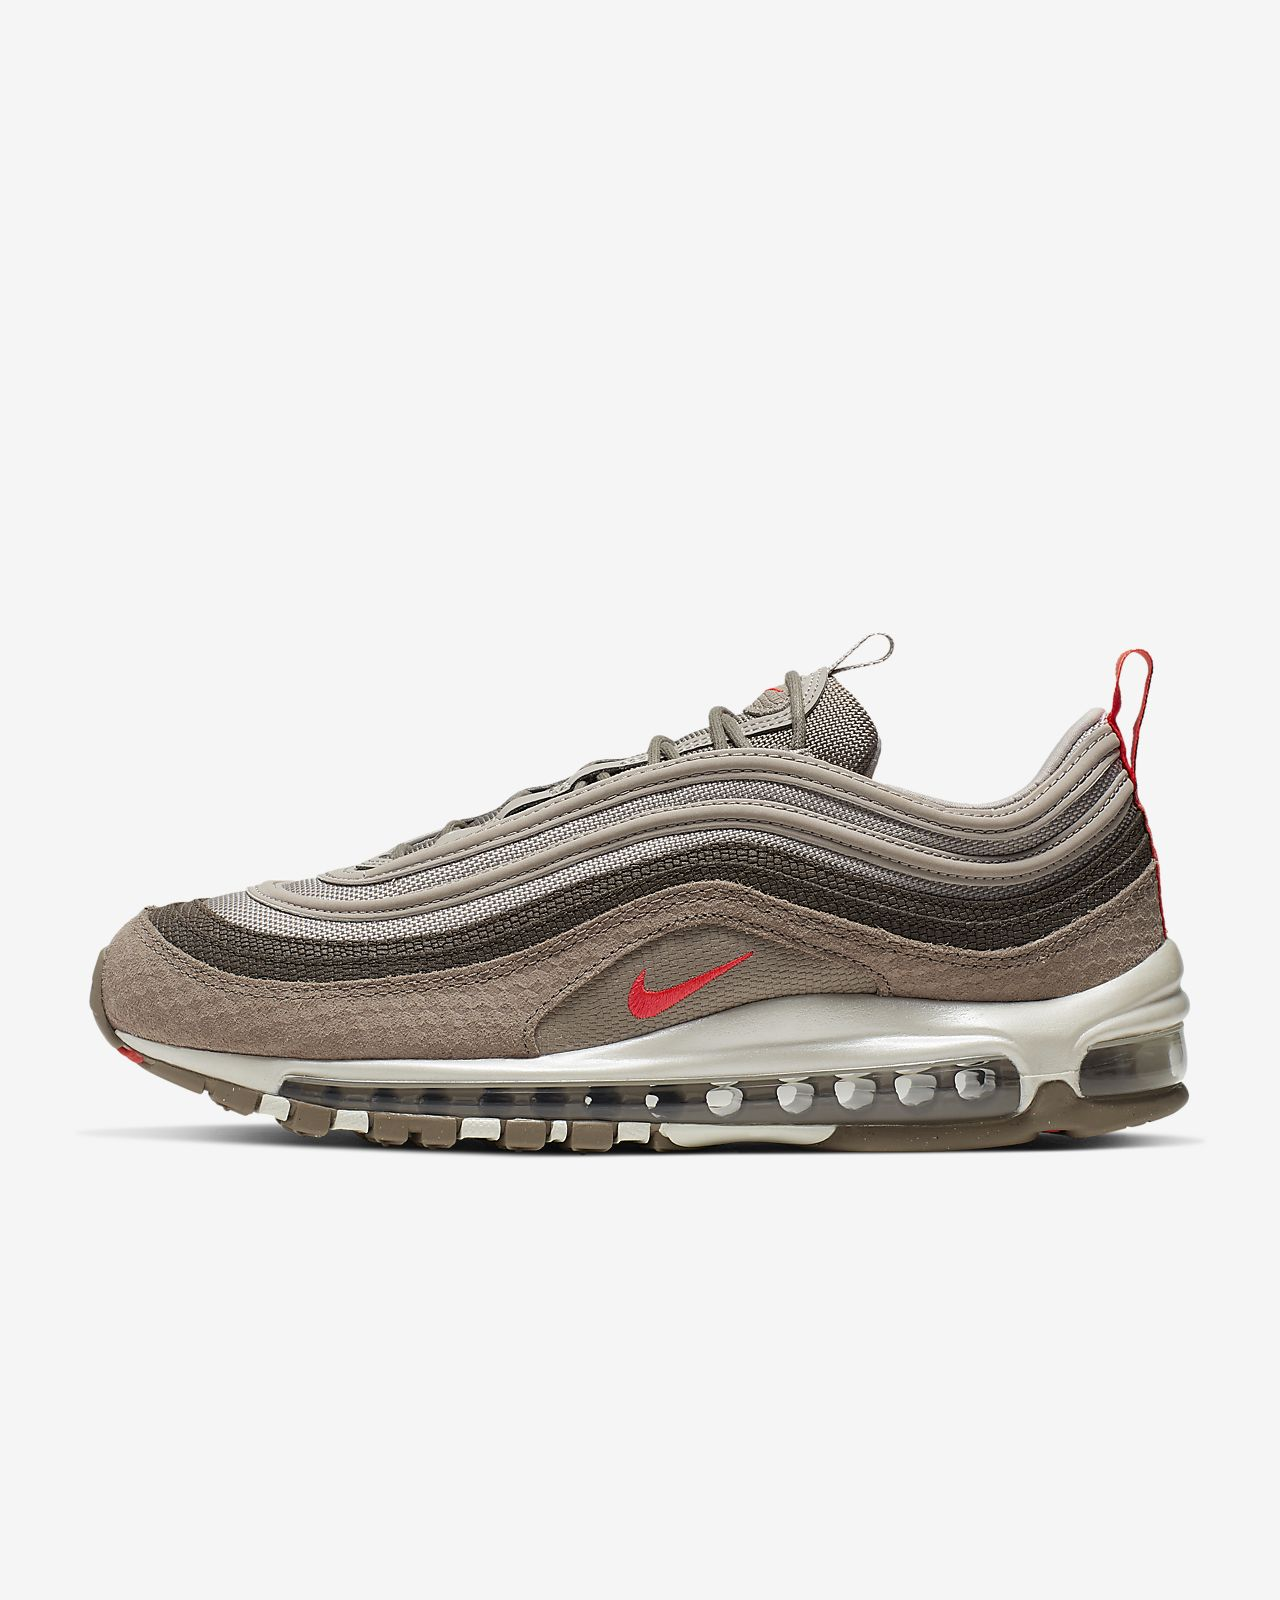 low priced 40b3b 4cba2 Men s Shoe. Nike Air Max 97 Premium